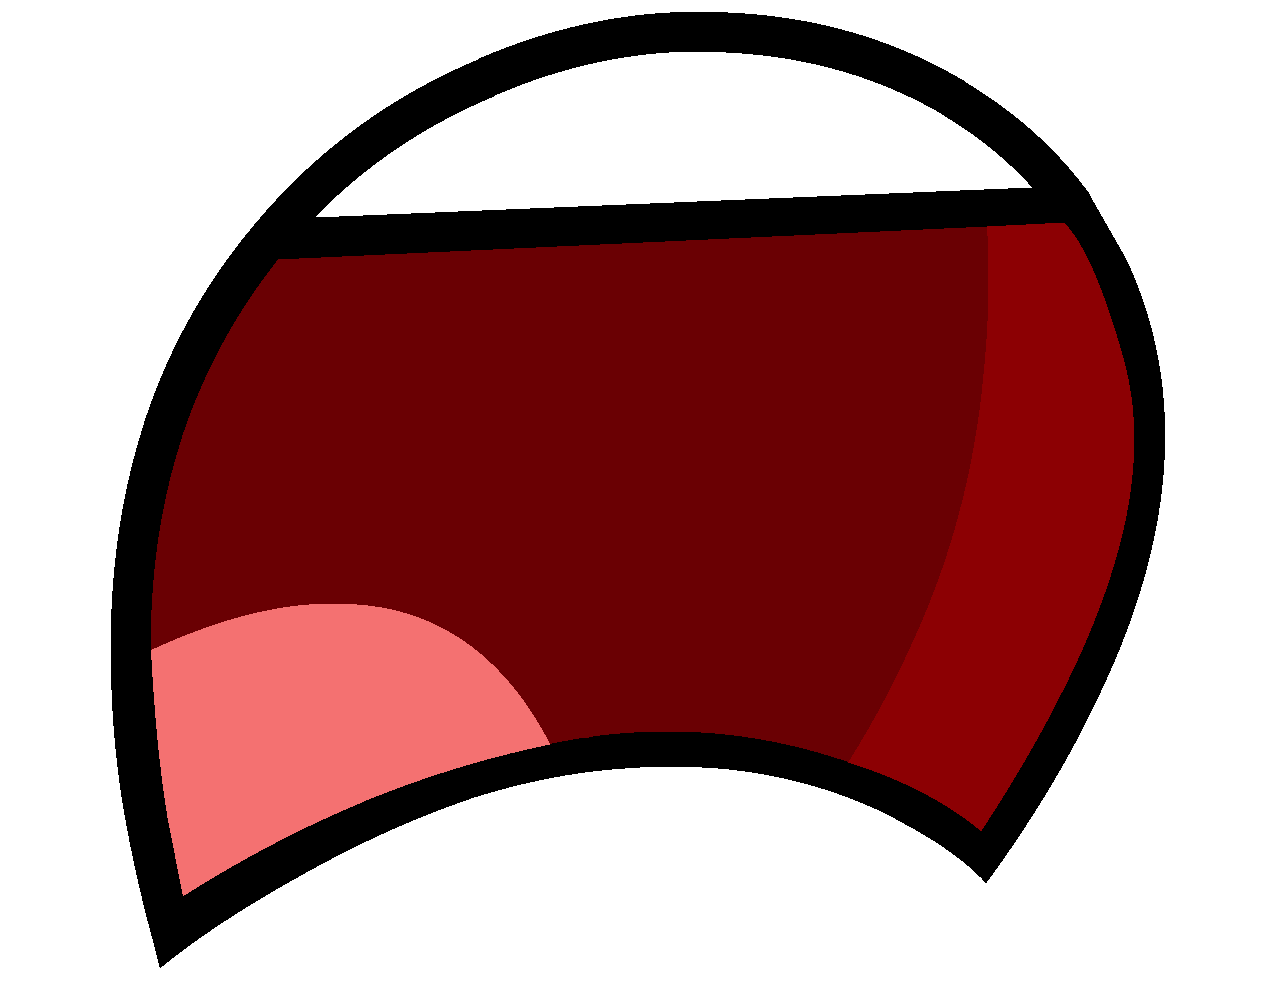 Cartoon mouth png. Image wide open frown